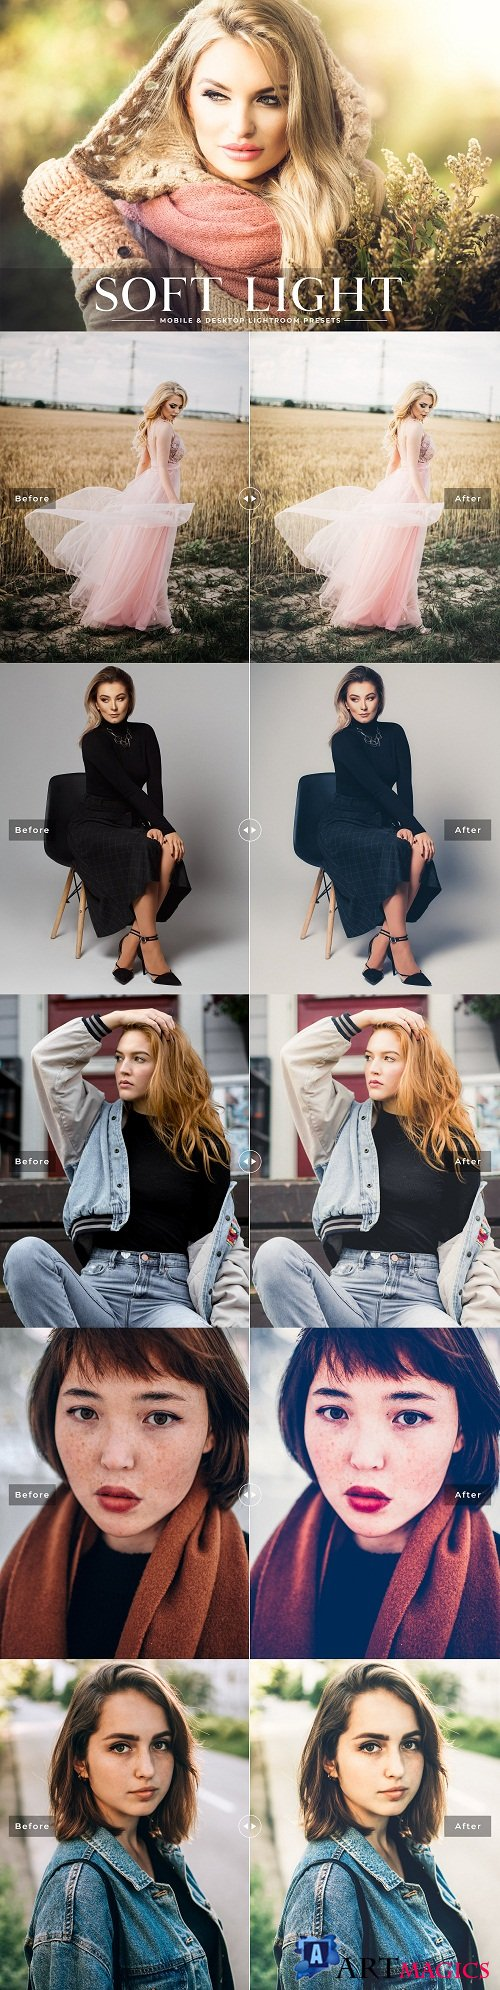 Soft Light Lightroom Presets Pack - 3659432